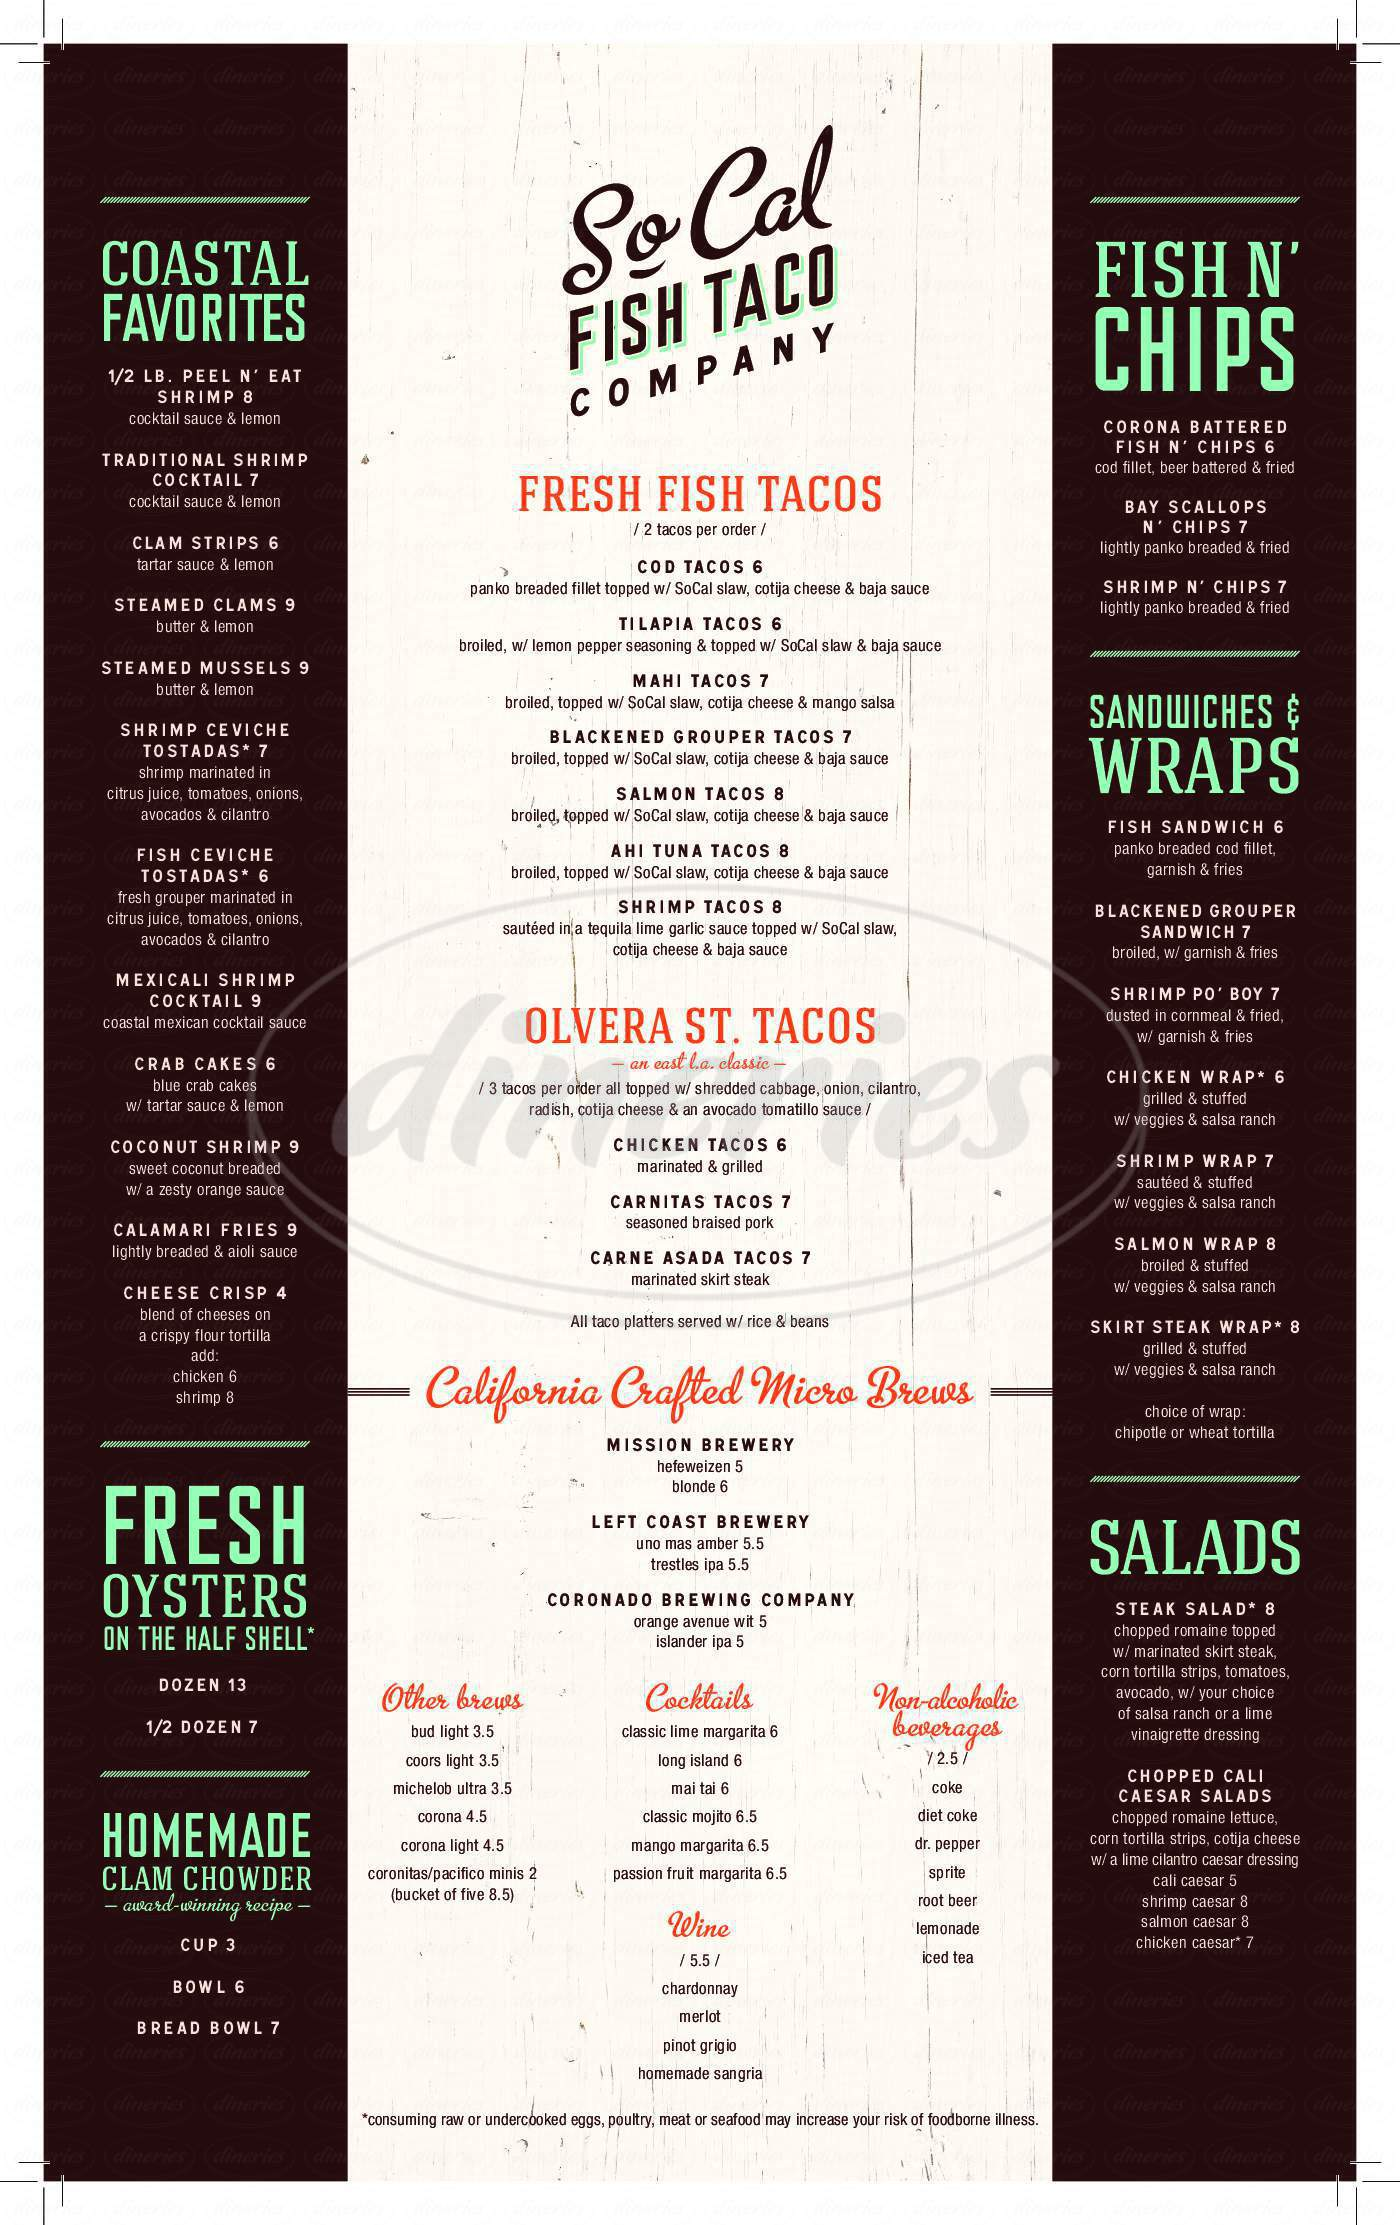 menu for So-Cal Fish Taco Company